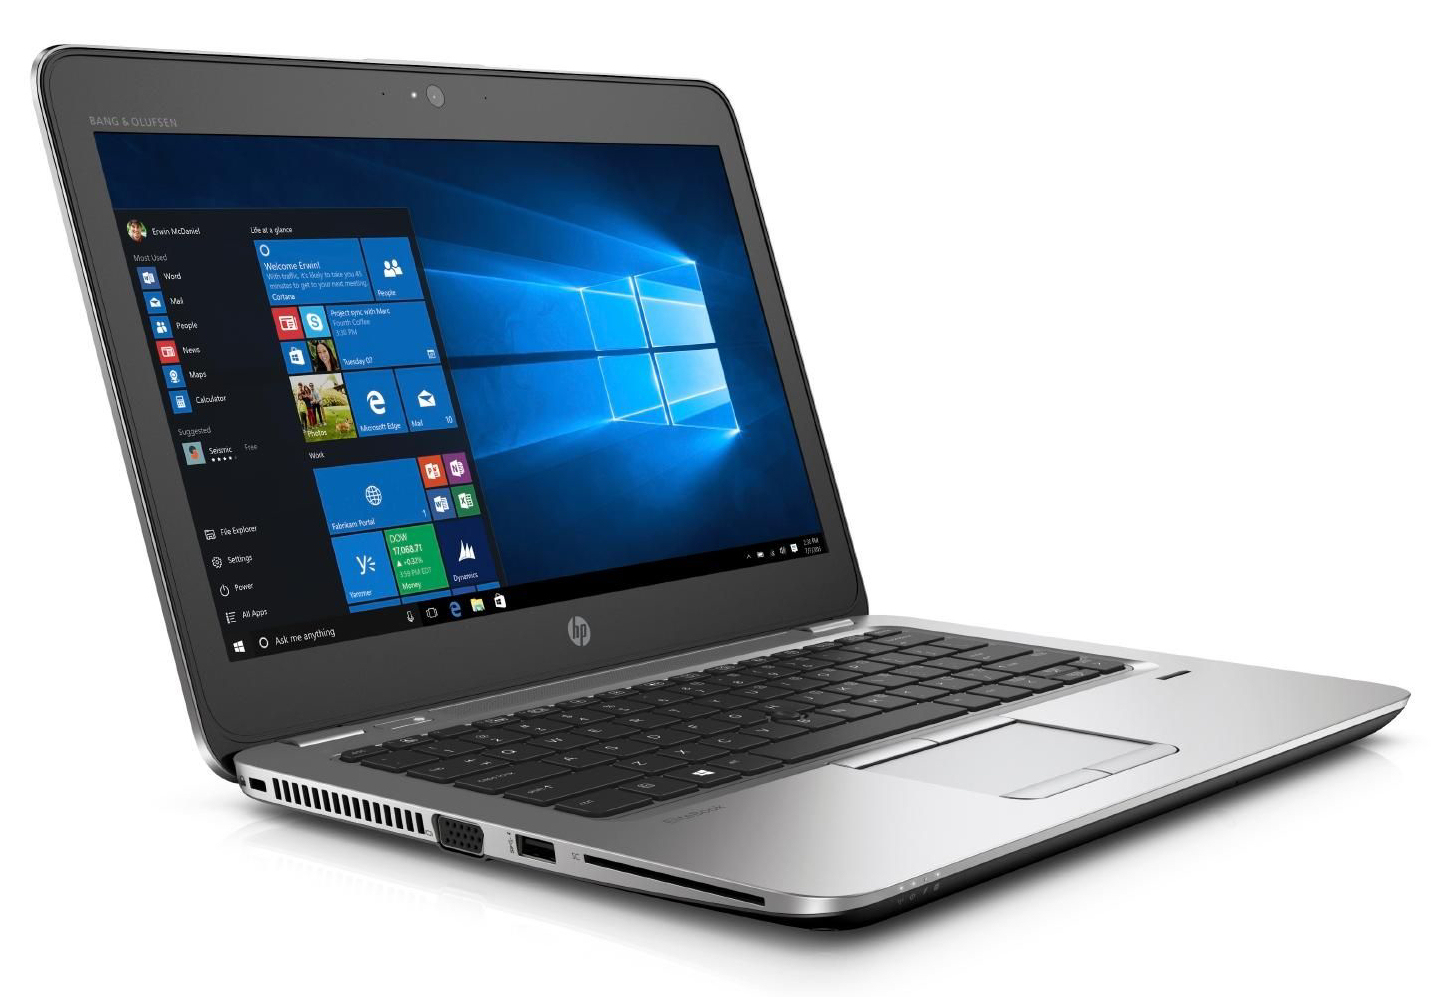 HP EliteBook 820 G4 7500U FullHD Notebook rvid rtkel